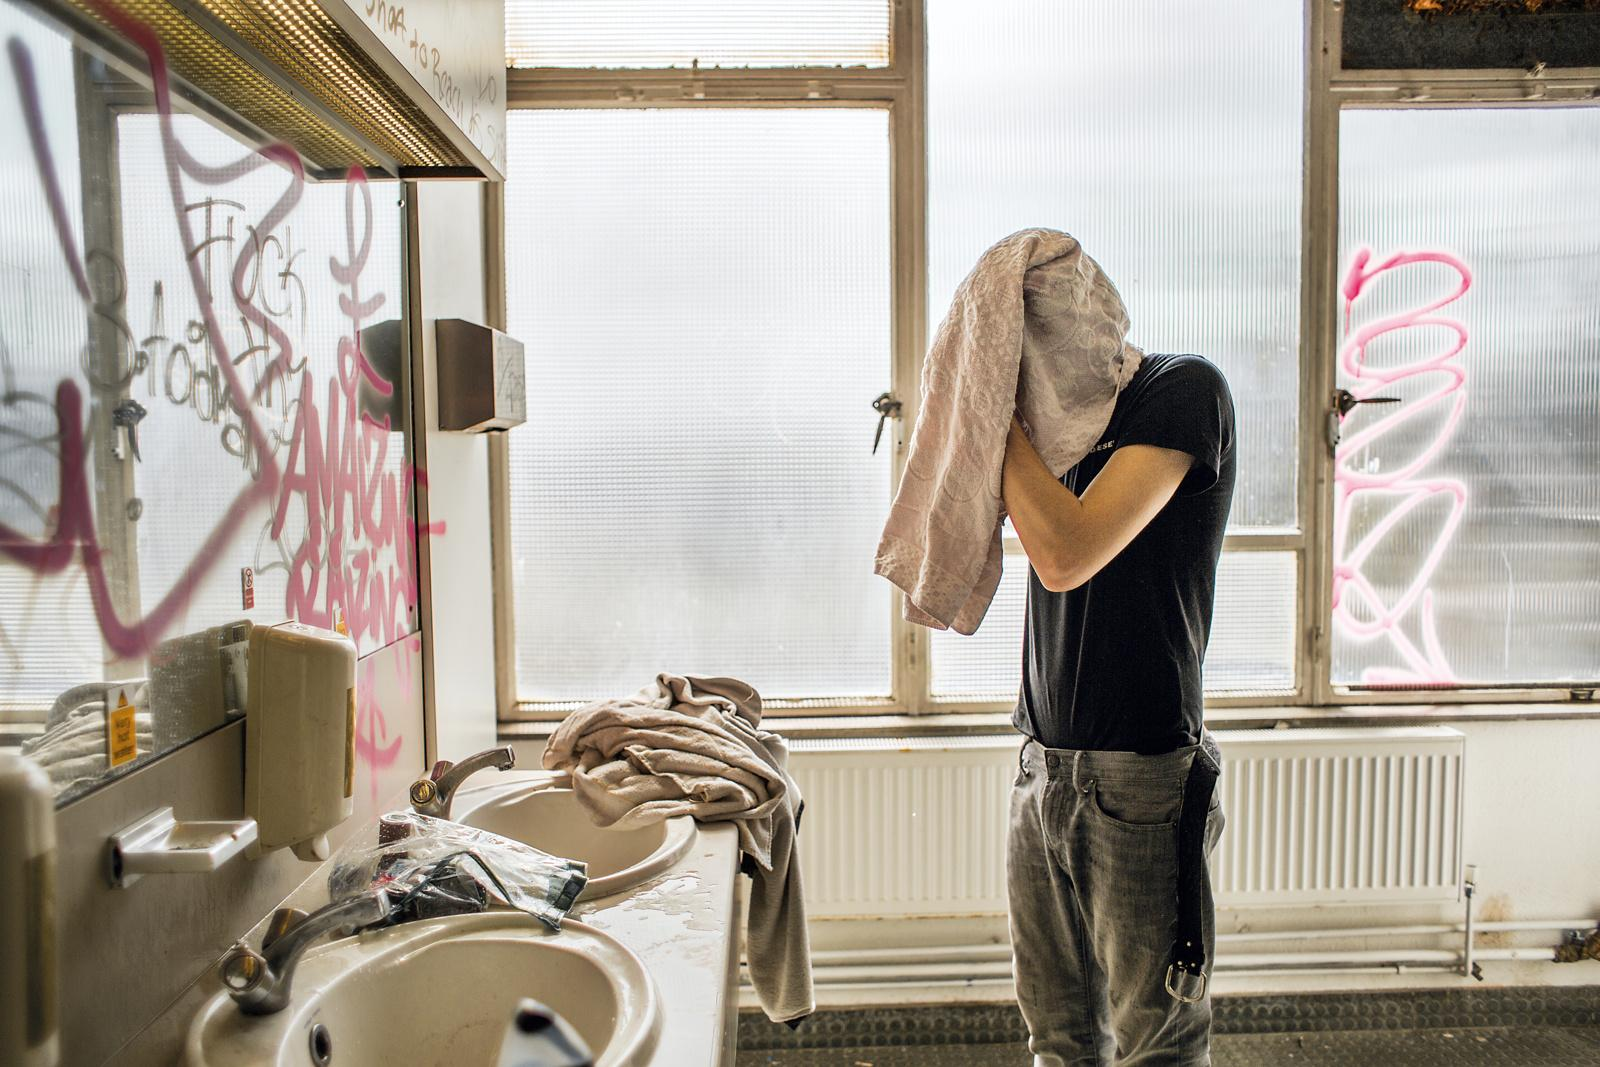 LONDON, UNITED KINGDOM - MAY 09, 2013: A resident washes his hair in the communal washrooms in a squat called 'The Castle' on May 09, 2013 in London, United Kingdom. Once used as a five-storey office block, the building then accommodated more than 100 squatters and was used as a location for parties. Squatting is often a conscious choice of an alternative and communal way of living. On 1st of September 2012 the new section 144 of the Legal Aid Sentencing and Punishment of Offenders Bill (LASPO) came into force rendering squatting in residential buildings a criminal offence. Hence, squatting can legally only be attempted in commercial premises with the result that squatters often occupy unusual premises that contradict the conventional idea of home.